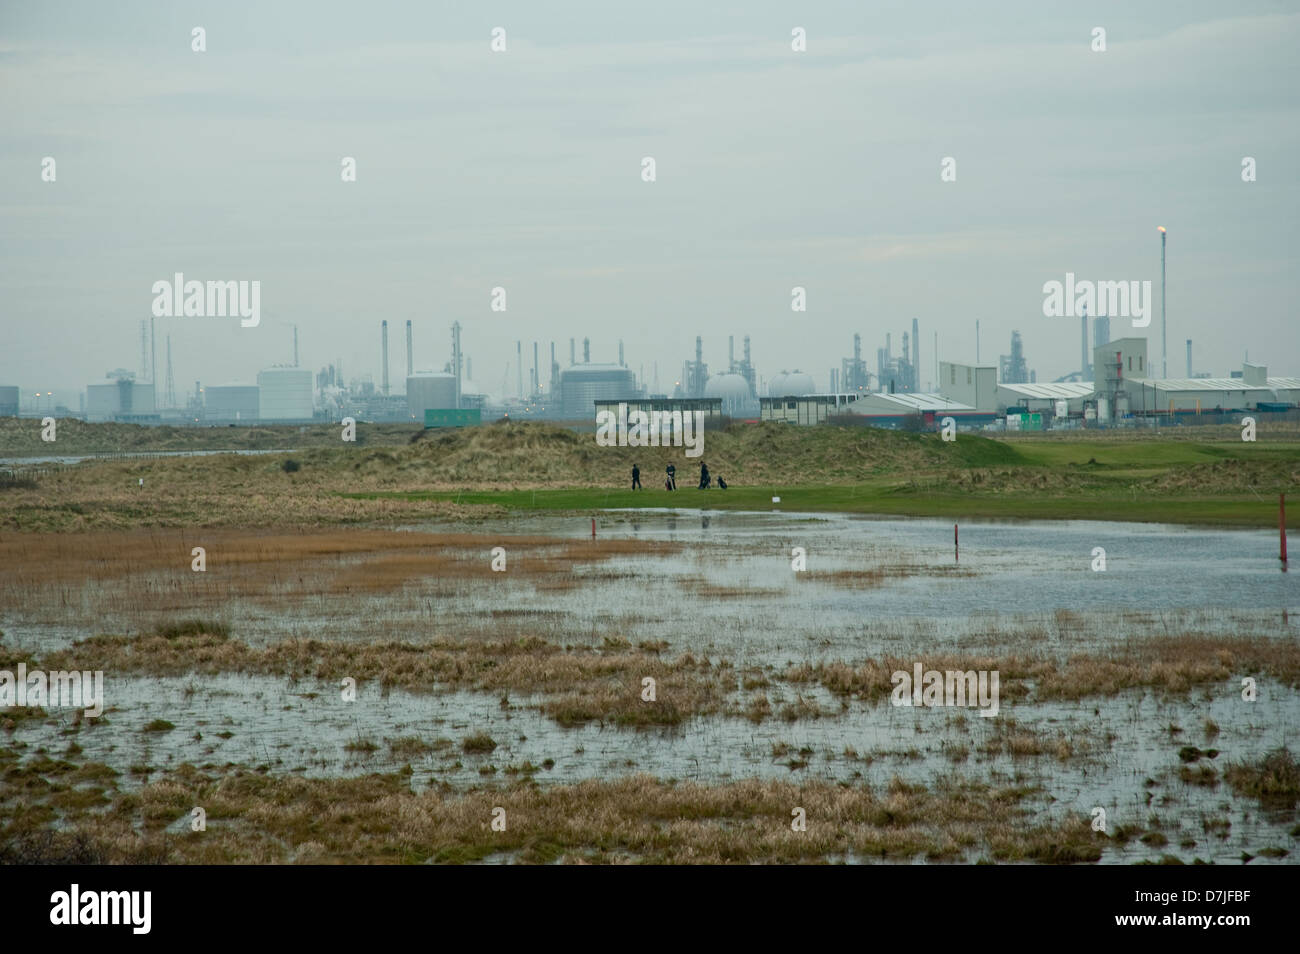 people playing golf amid oil industry and wetlands,puddles,mud,grey skies,extreme conditions - Stock Image